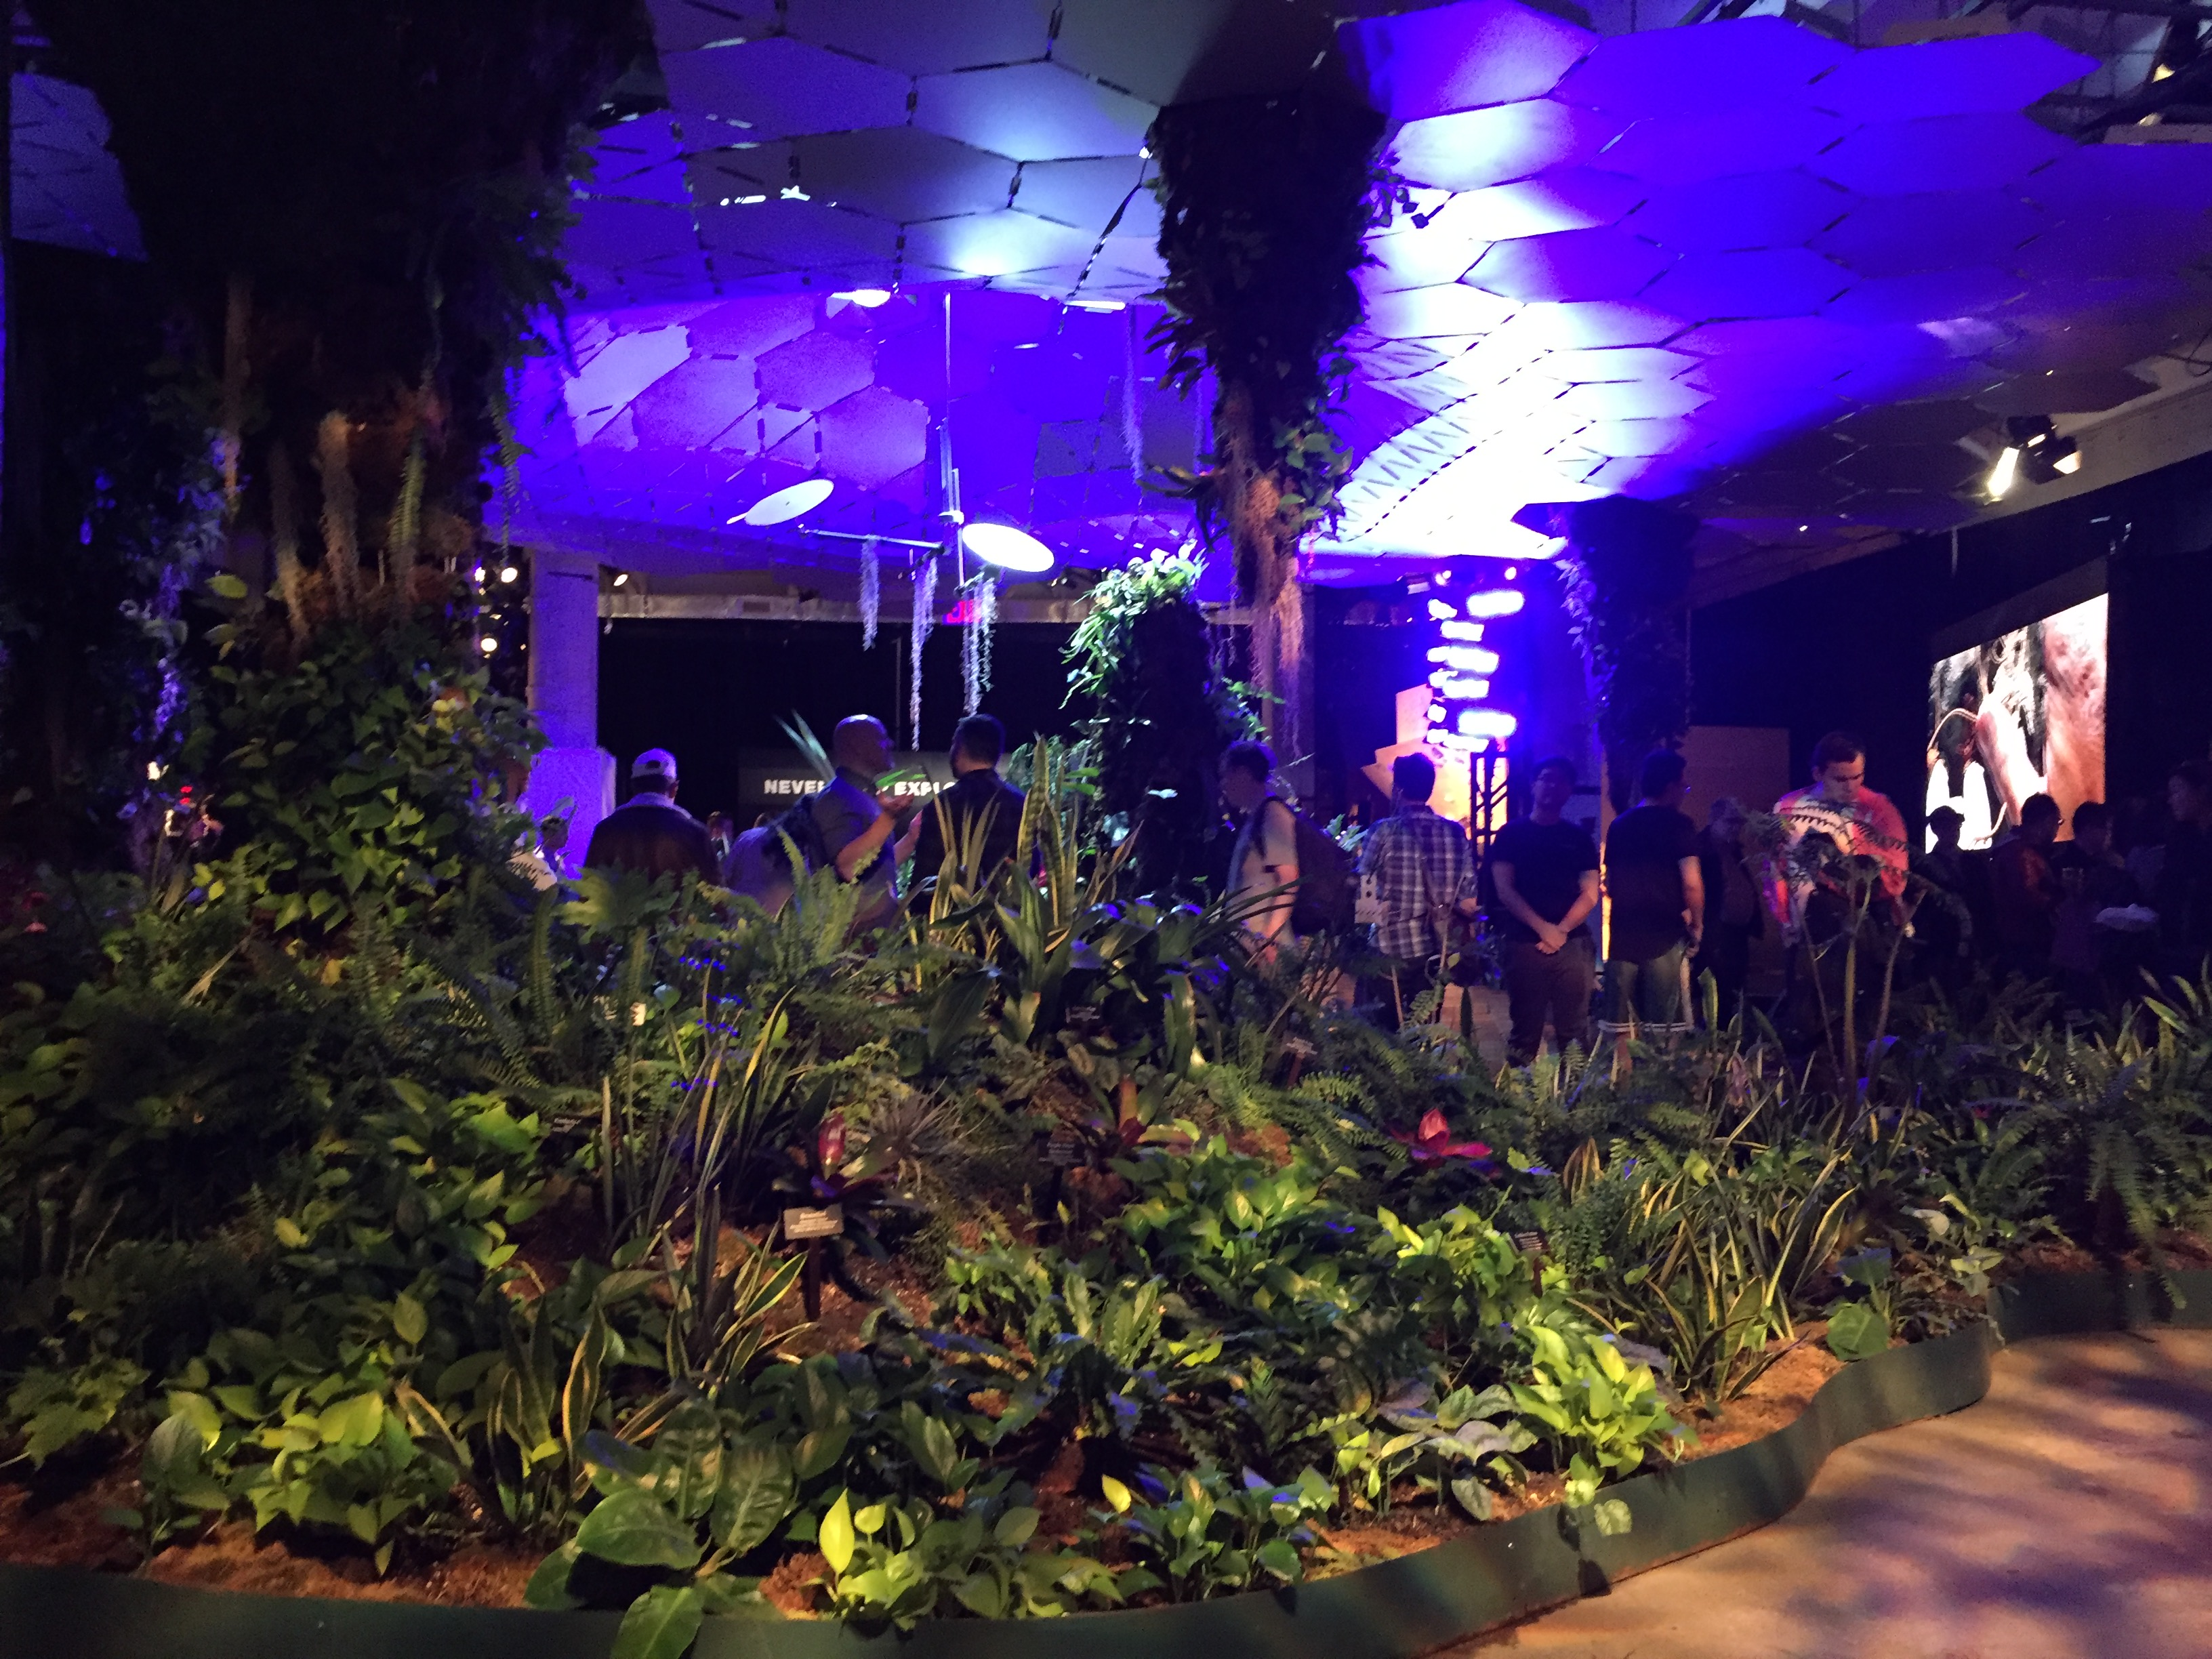 The Lowline Lab displays how plants will thrive underground when the Lowline park opens in the Essex Street subway.